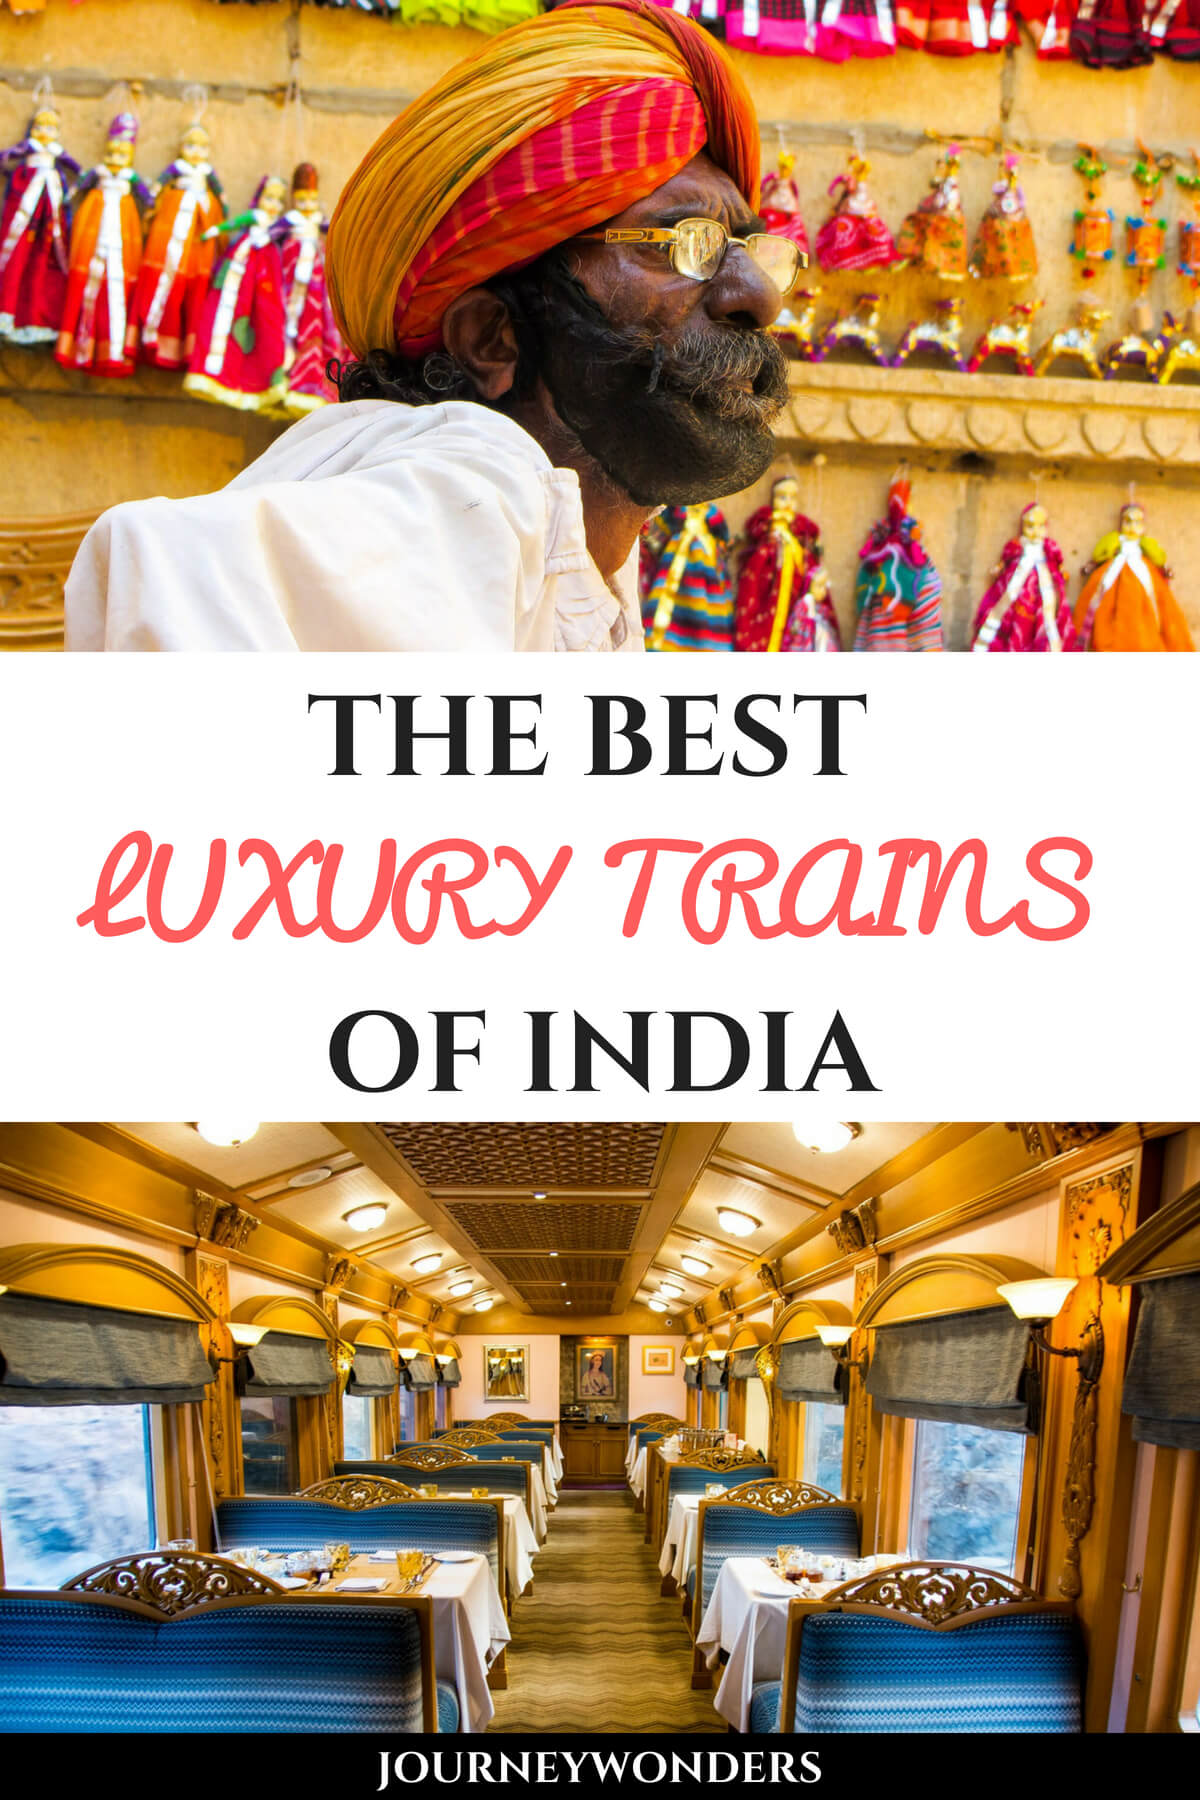 Interested in experiencing the luxury side of traveling in India? Check out this article about the Best 4 Luxury Trains of India: the Golden Chariot, the Maharaja's Express, the Palace on Wheels and the Deccan Odyssey !!! All aboard! #India #LuxuryTravel #LuxuryTrain